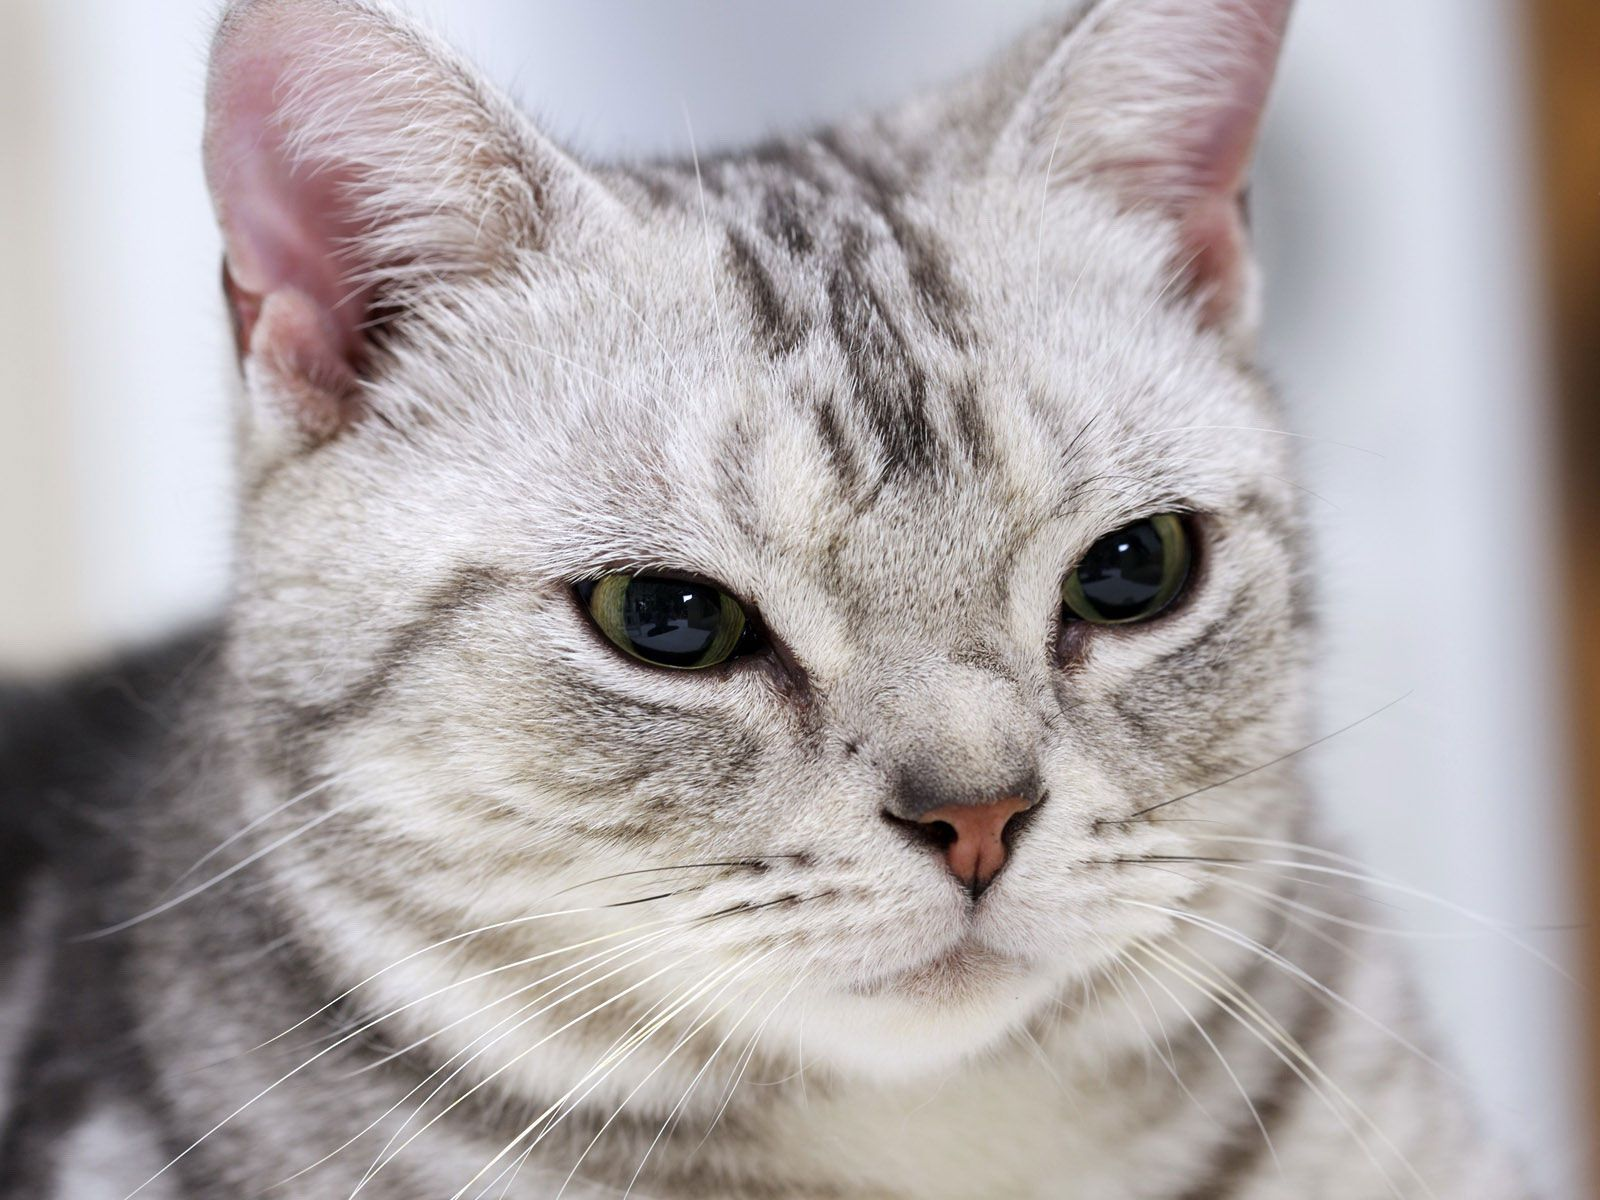 Pin By Tammy Hucks Sheriff On Future Home Pets Life American Shorthair Cat American Shorthair Kitten Cats